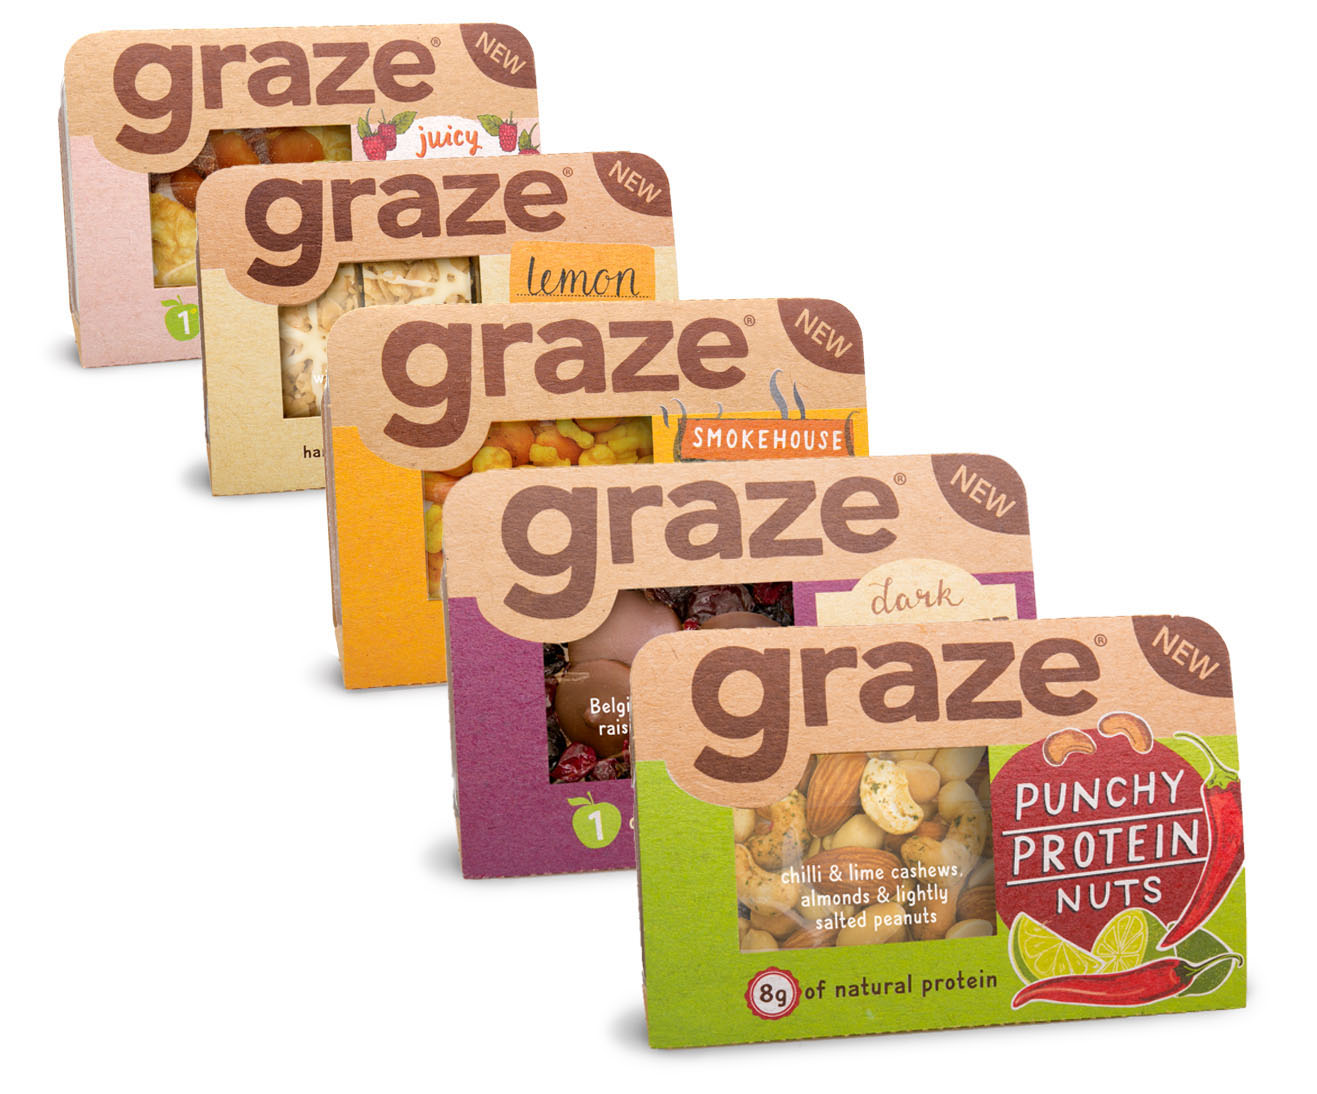 Photo: Graze snack for the retail channel